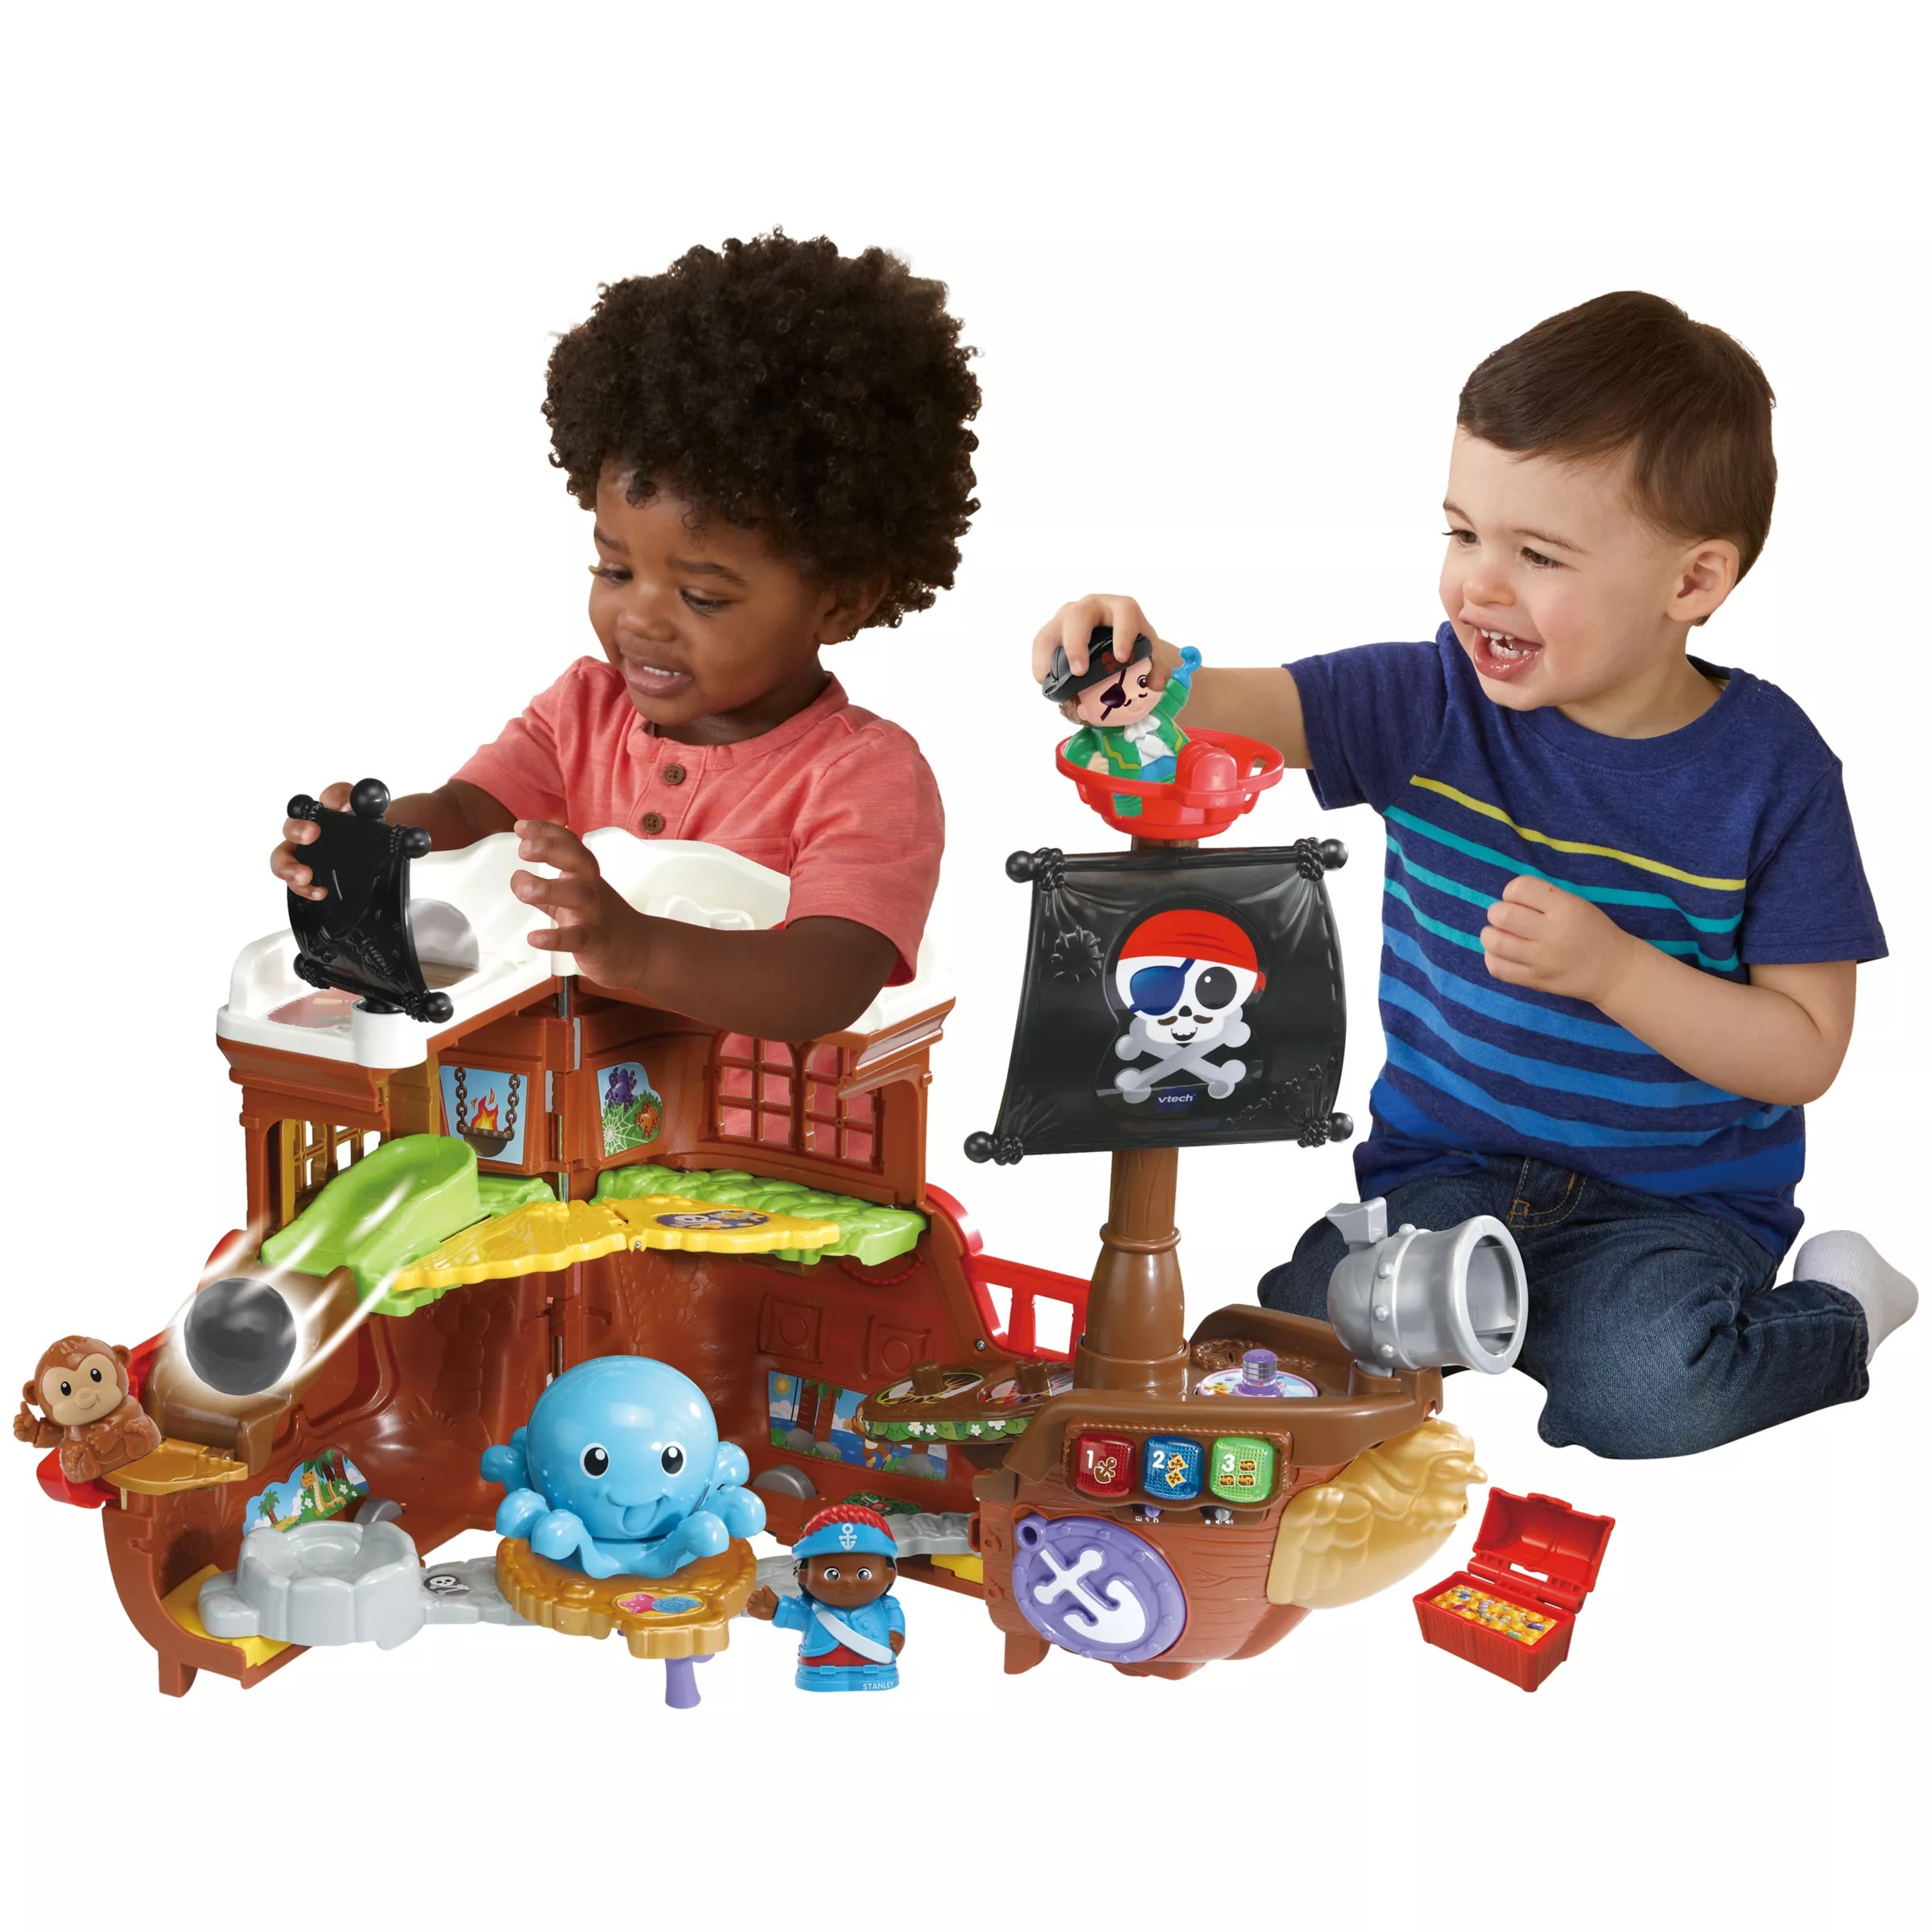 Toys For 1 Year Olds Kids Toys John Lewis Partners